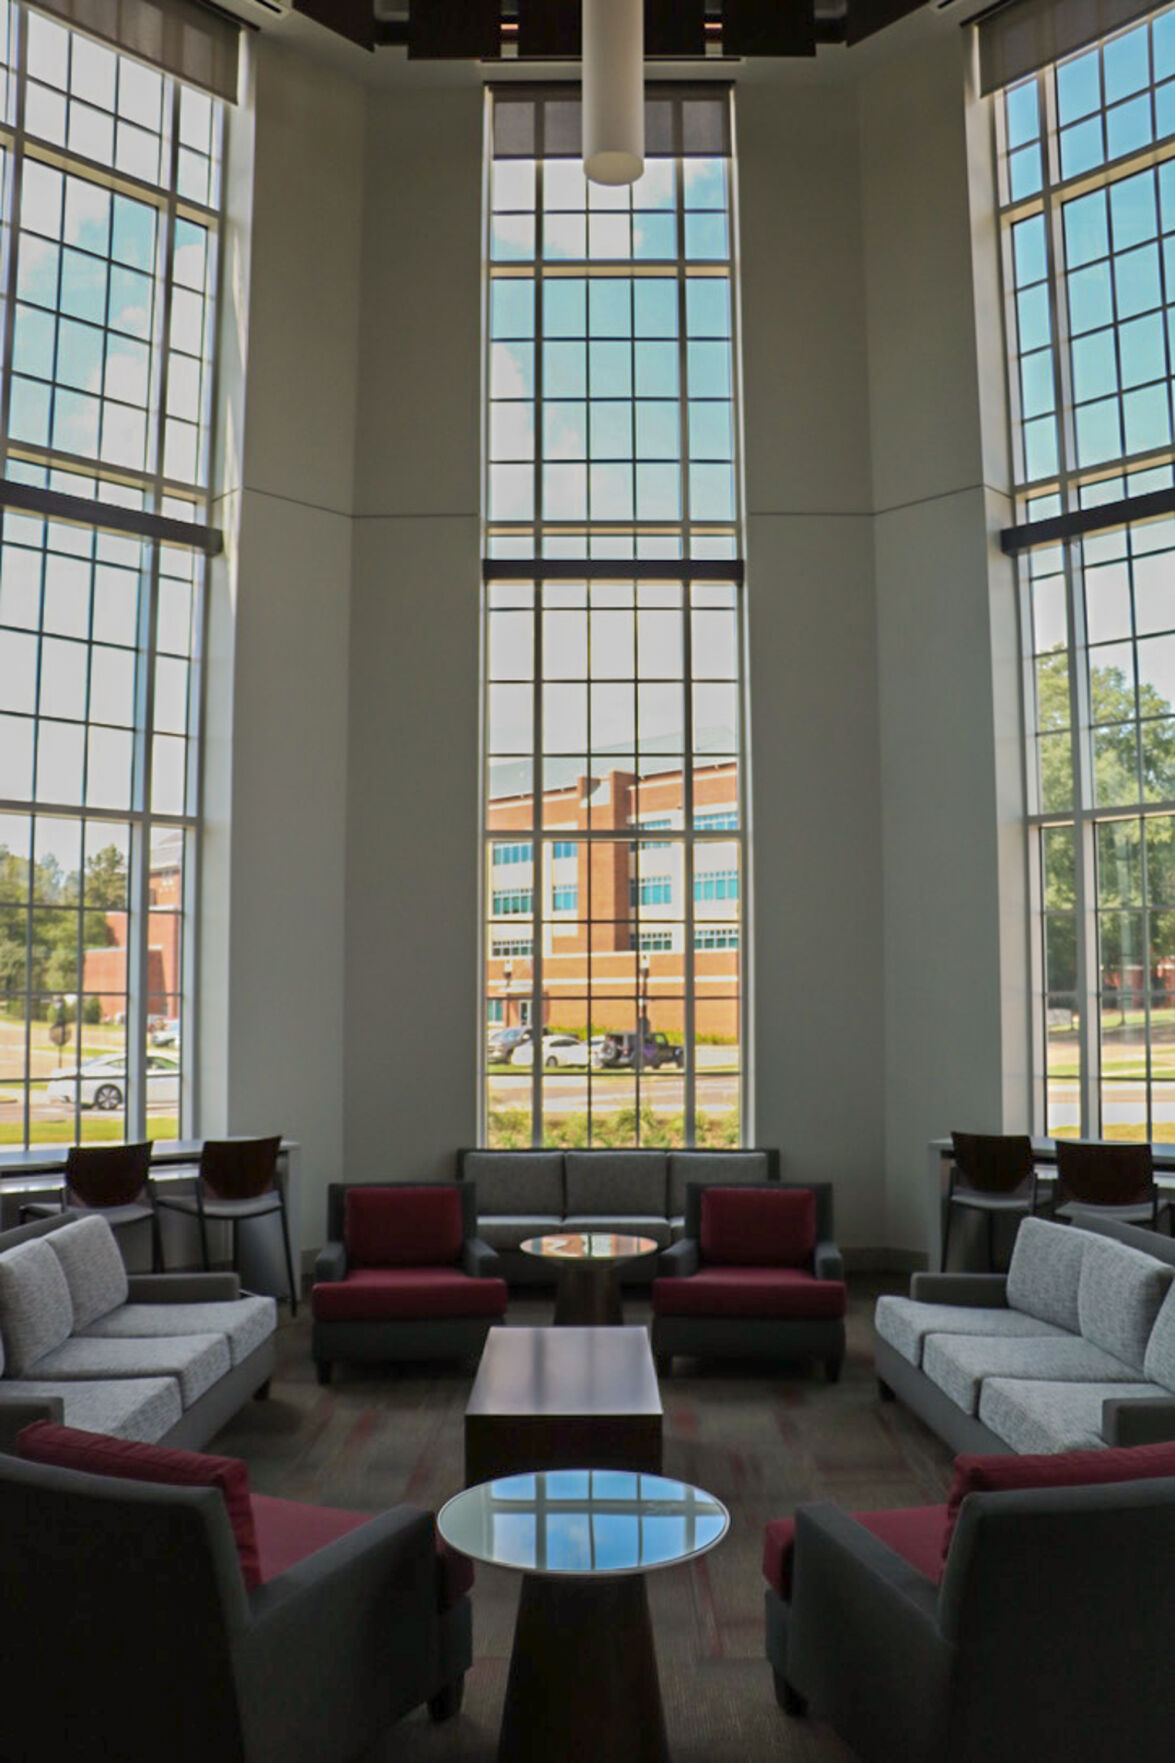 New Rula building offers advanced technology for engineering students